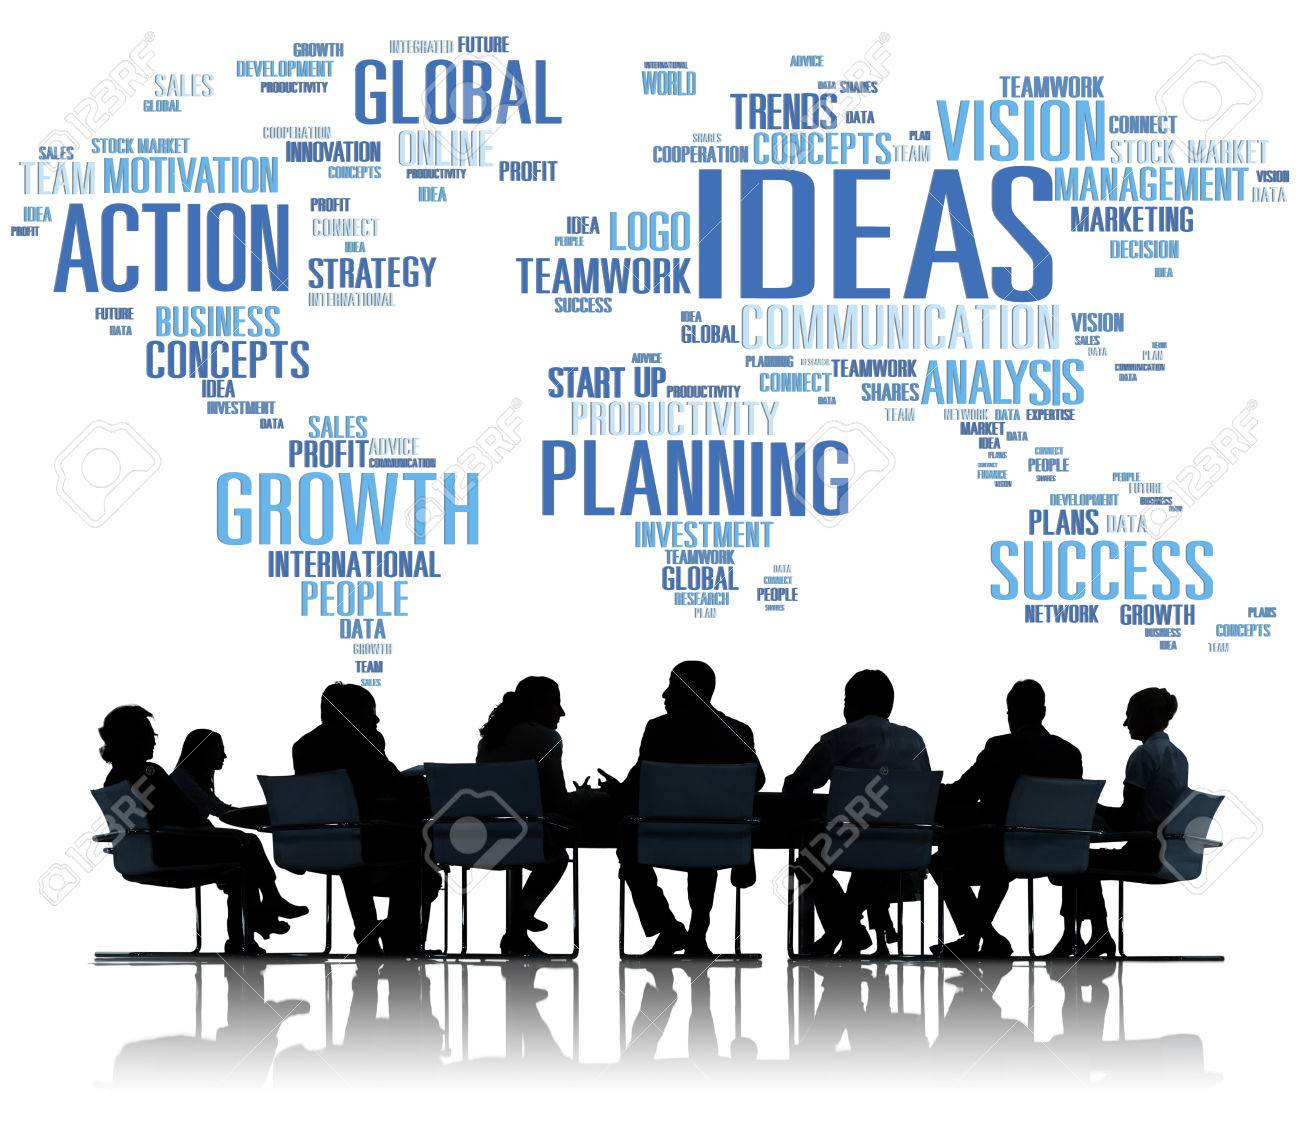 global business people meeting creativity ideas concept stock photo